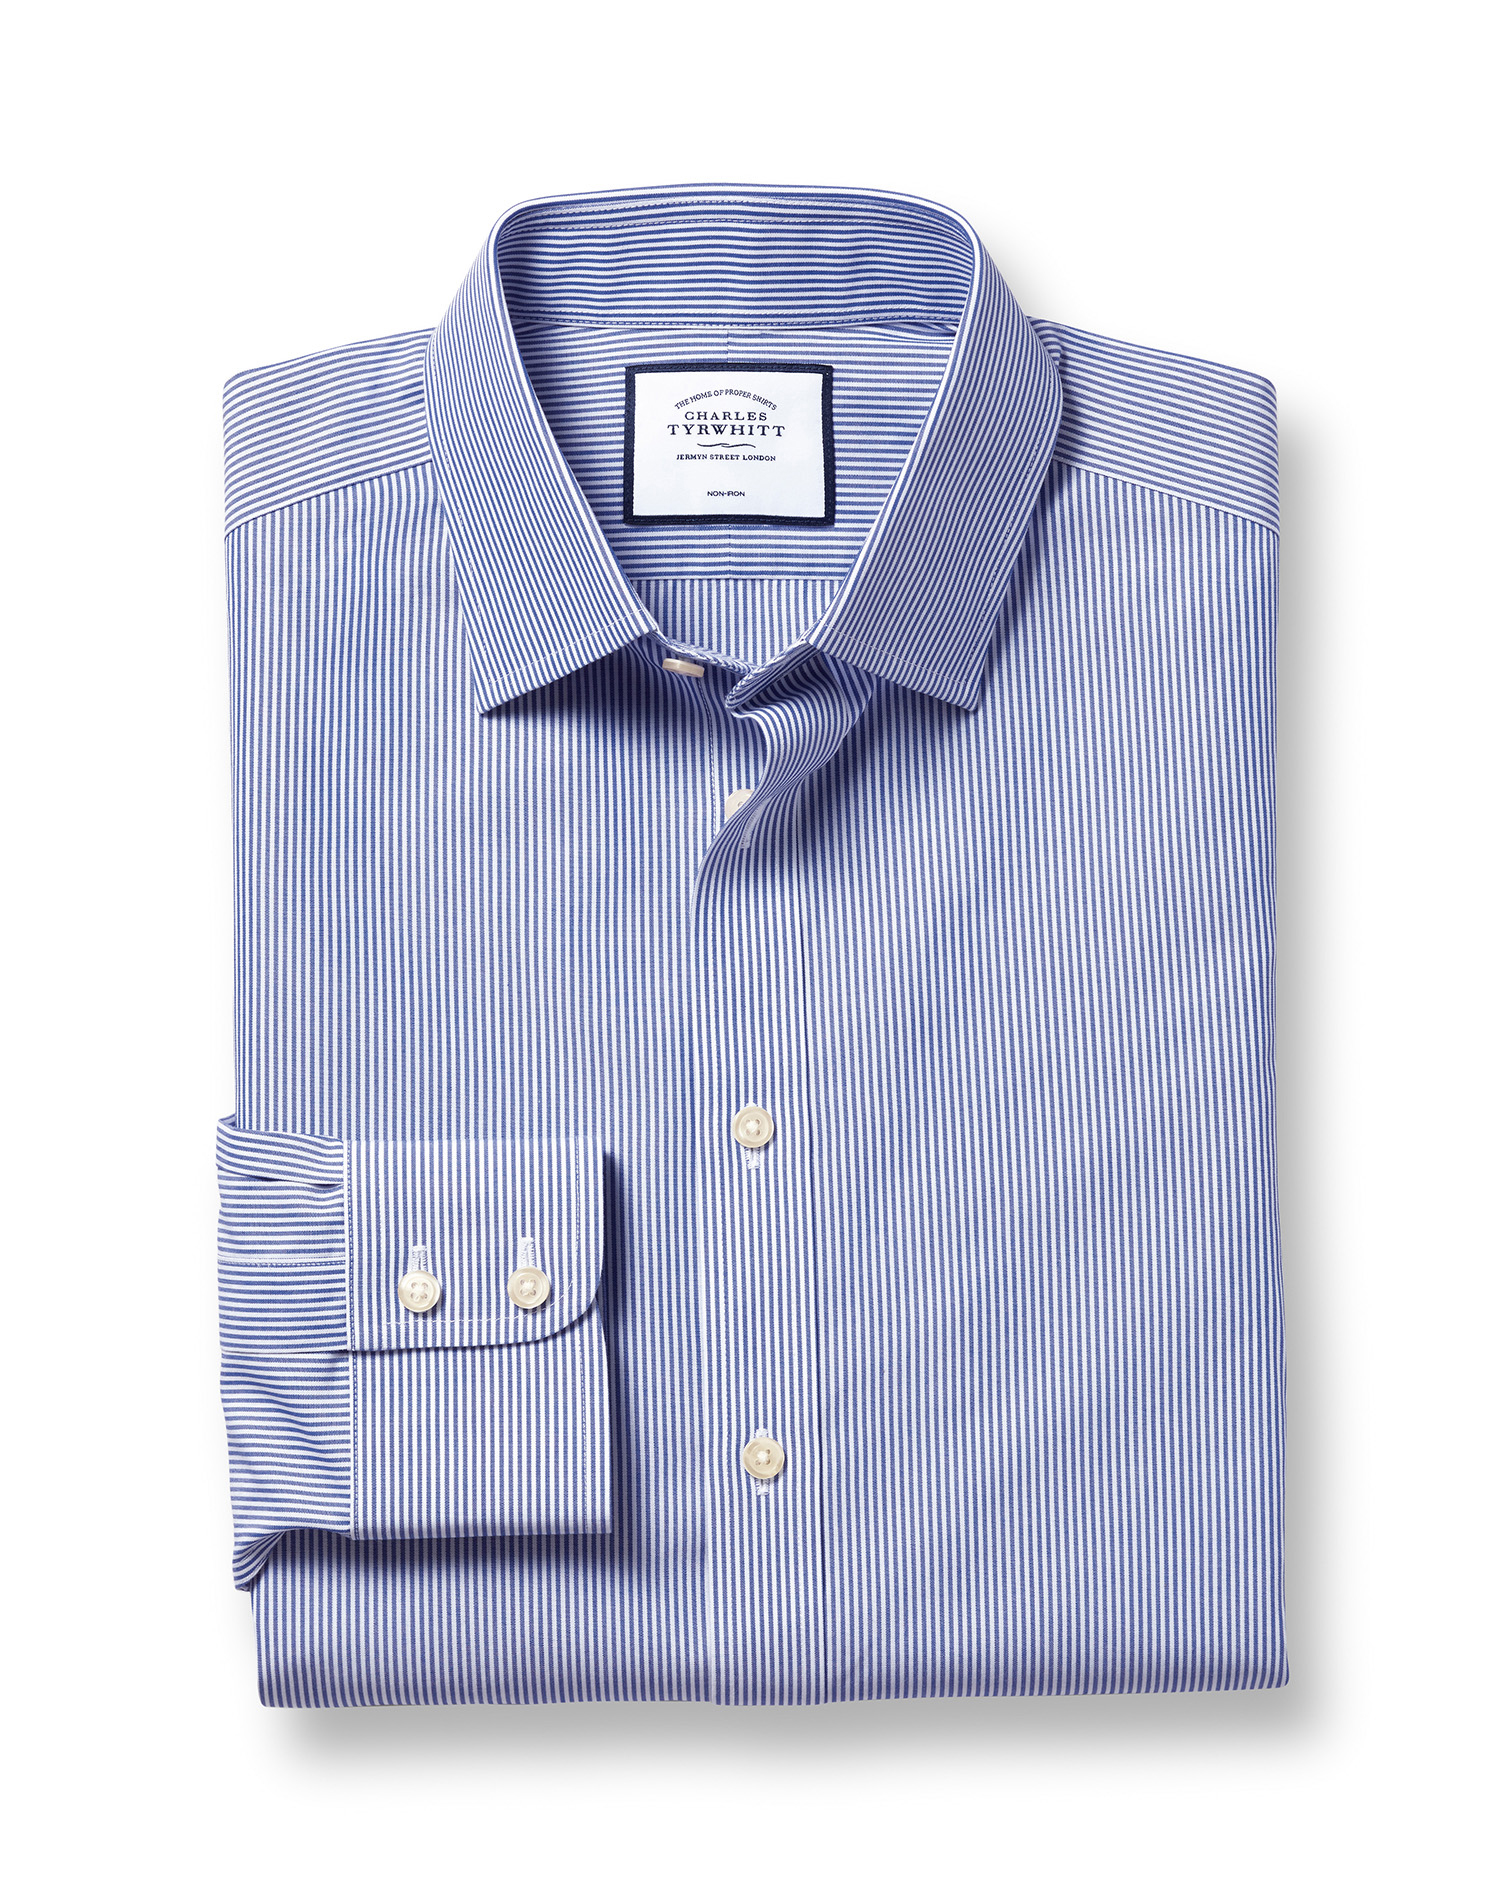 Slim Fit Non-Iron Bengal Stripe Navy Blue Cotton Formal Shirt Single Cuff Size 16.5/33 by Charles Ty